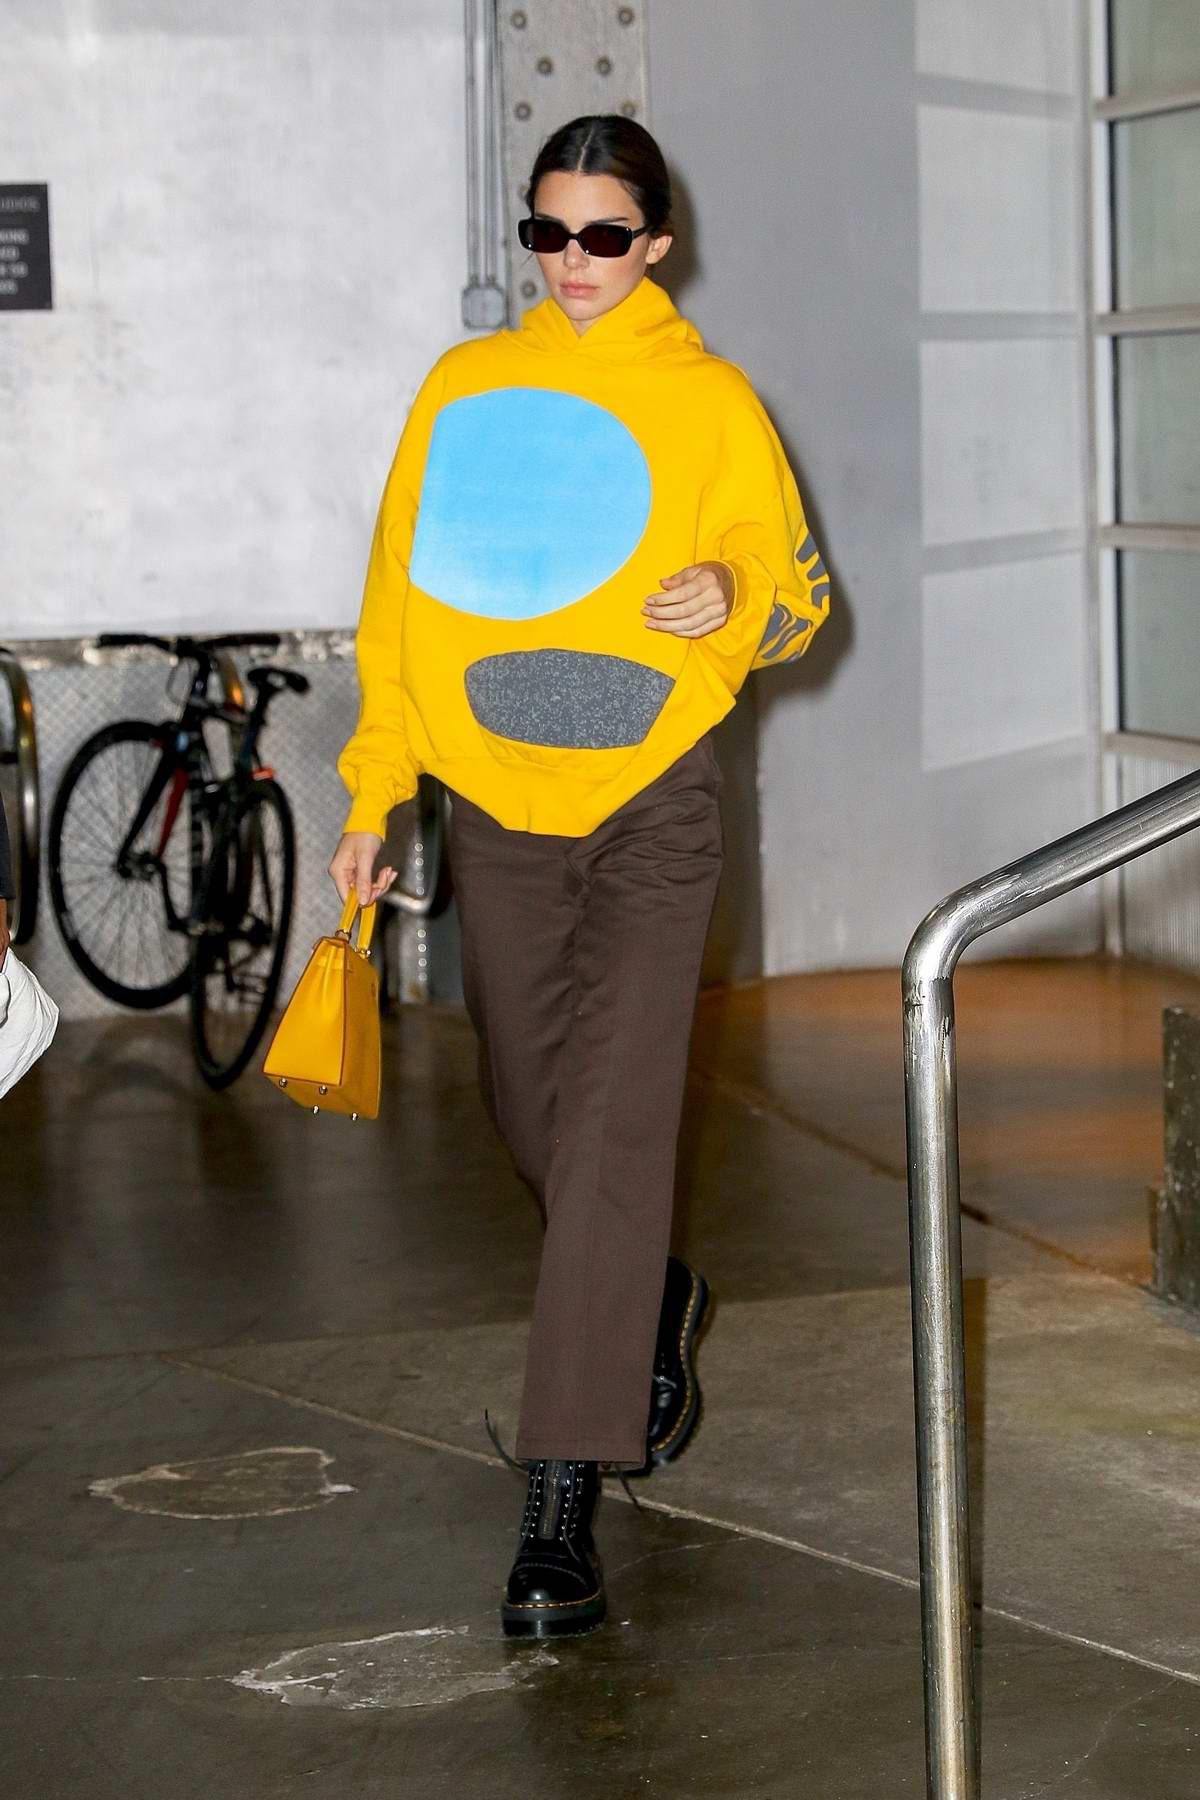 Kendall Jenner seen wearing a bright yellow hoodie as she exits Pier59 Studios in New York City